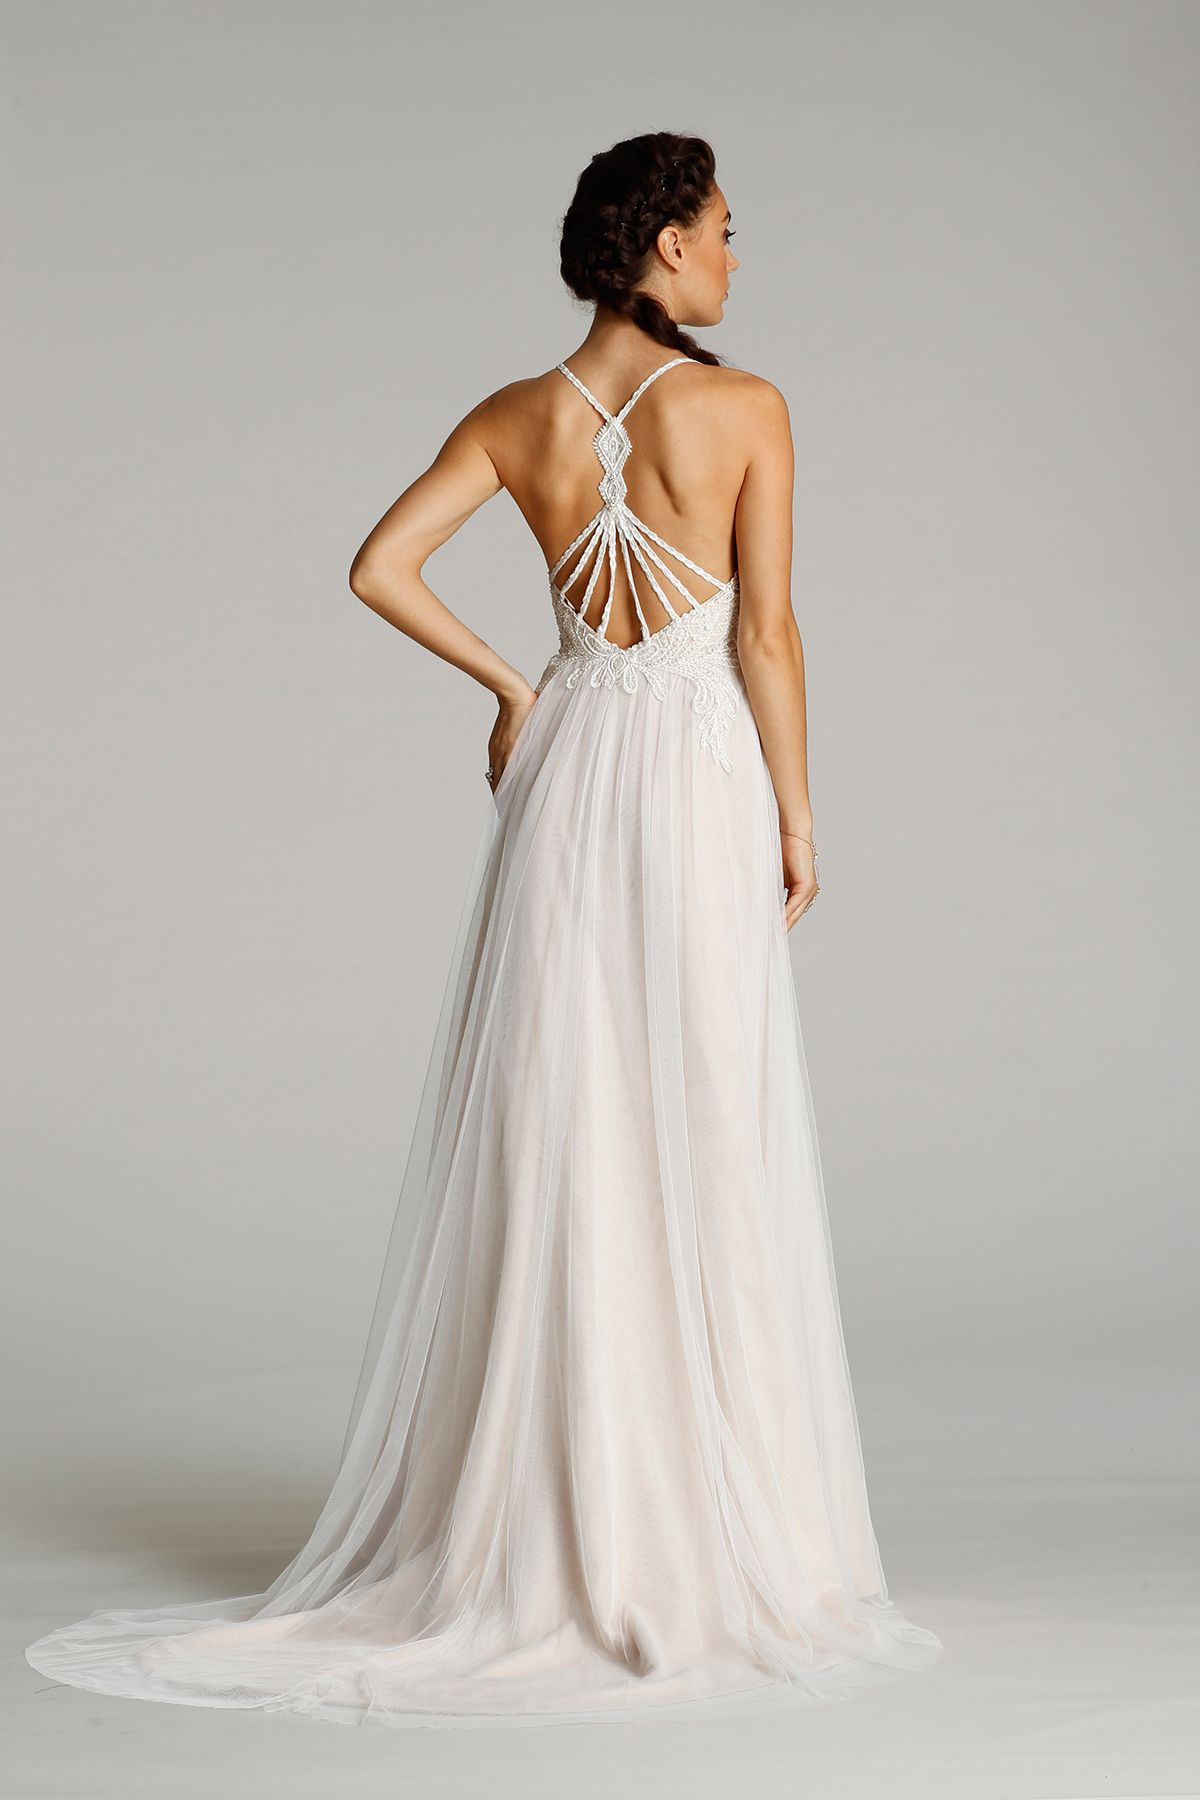 Style back view heart aflutter bridal pinterest bridal gowns